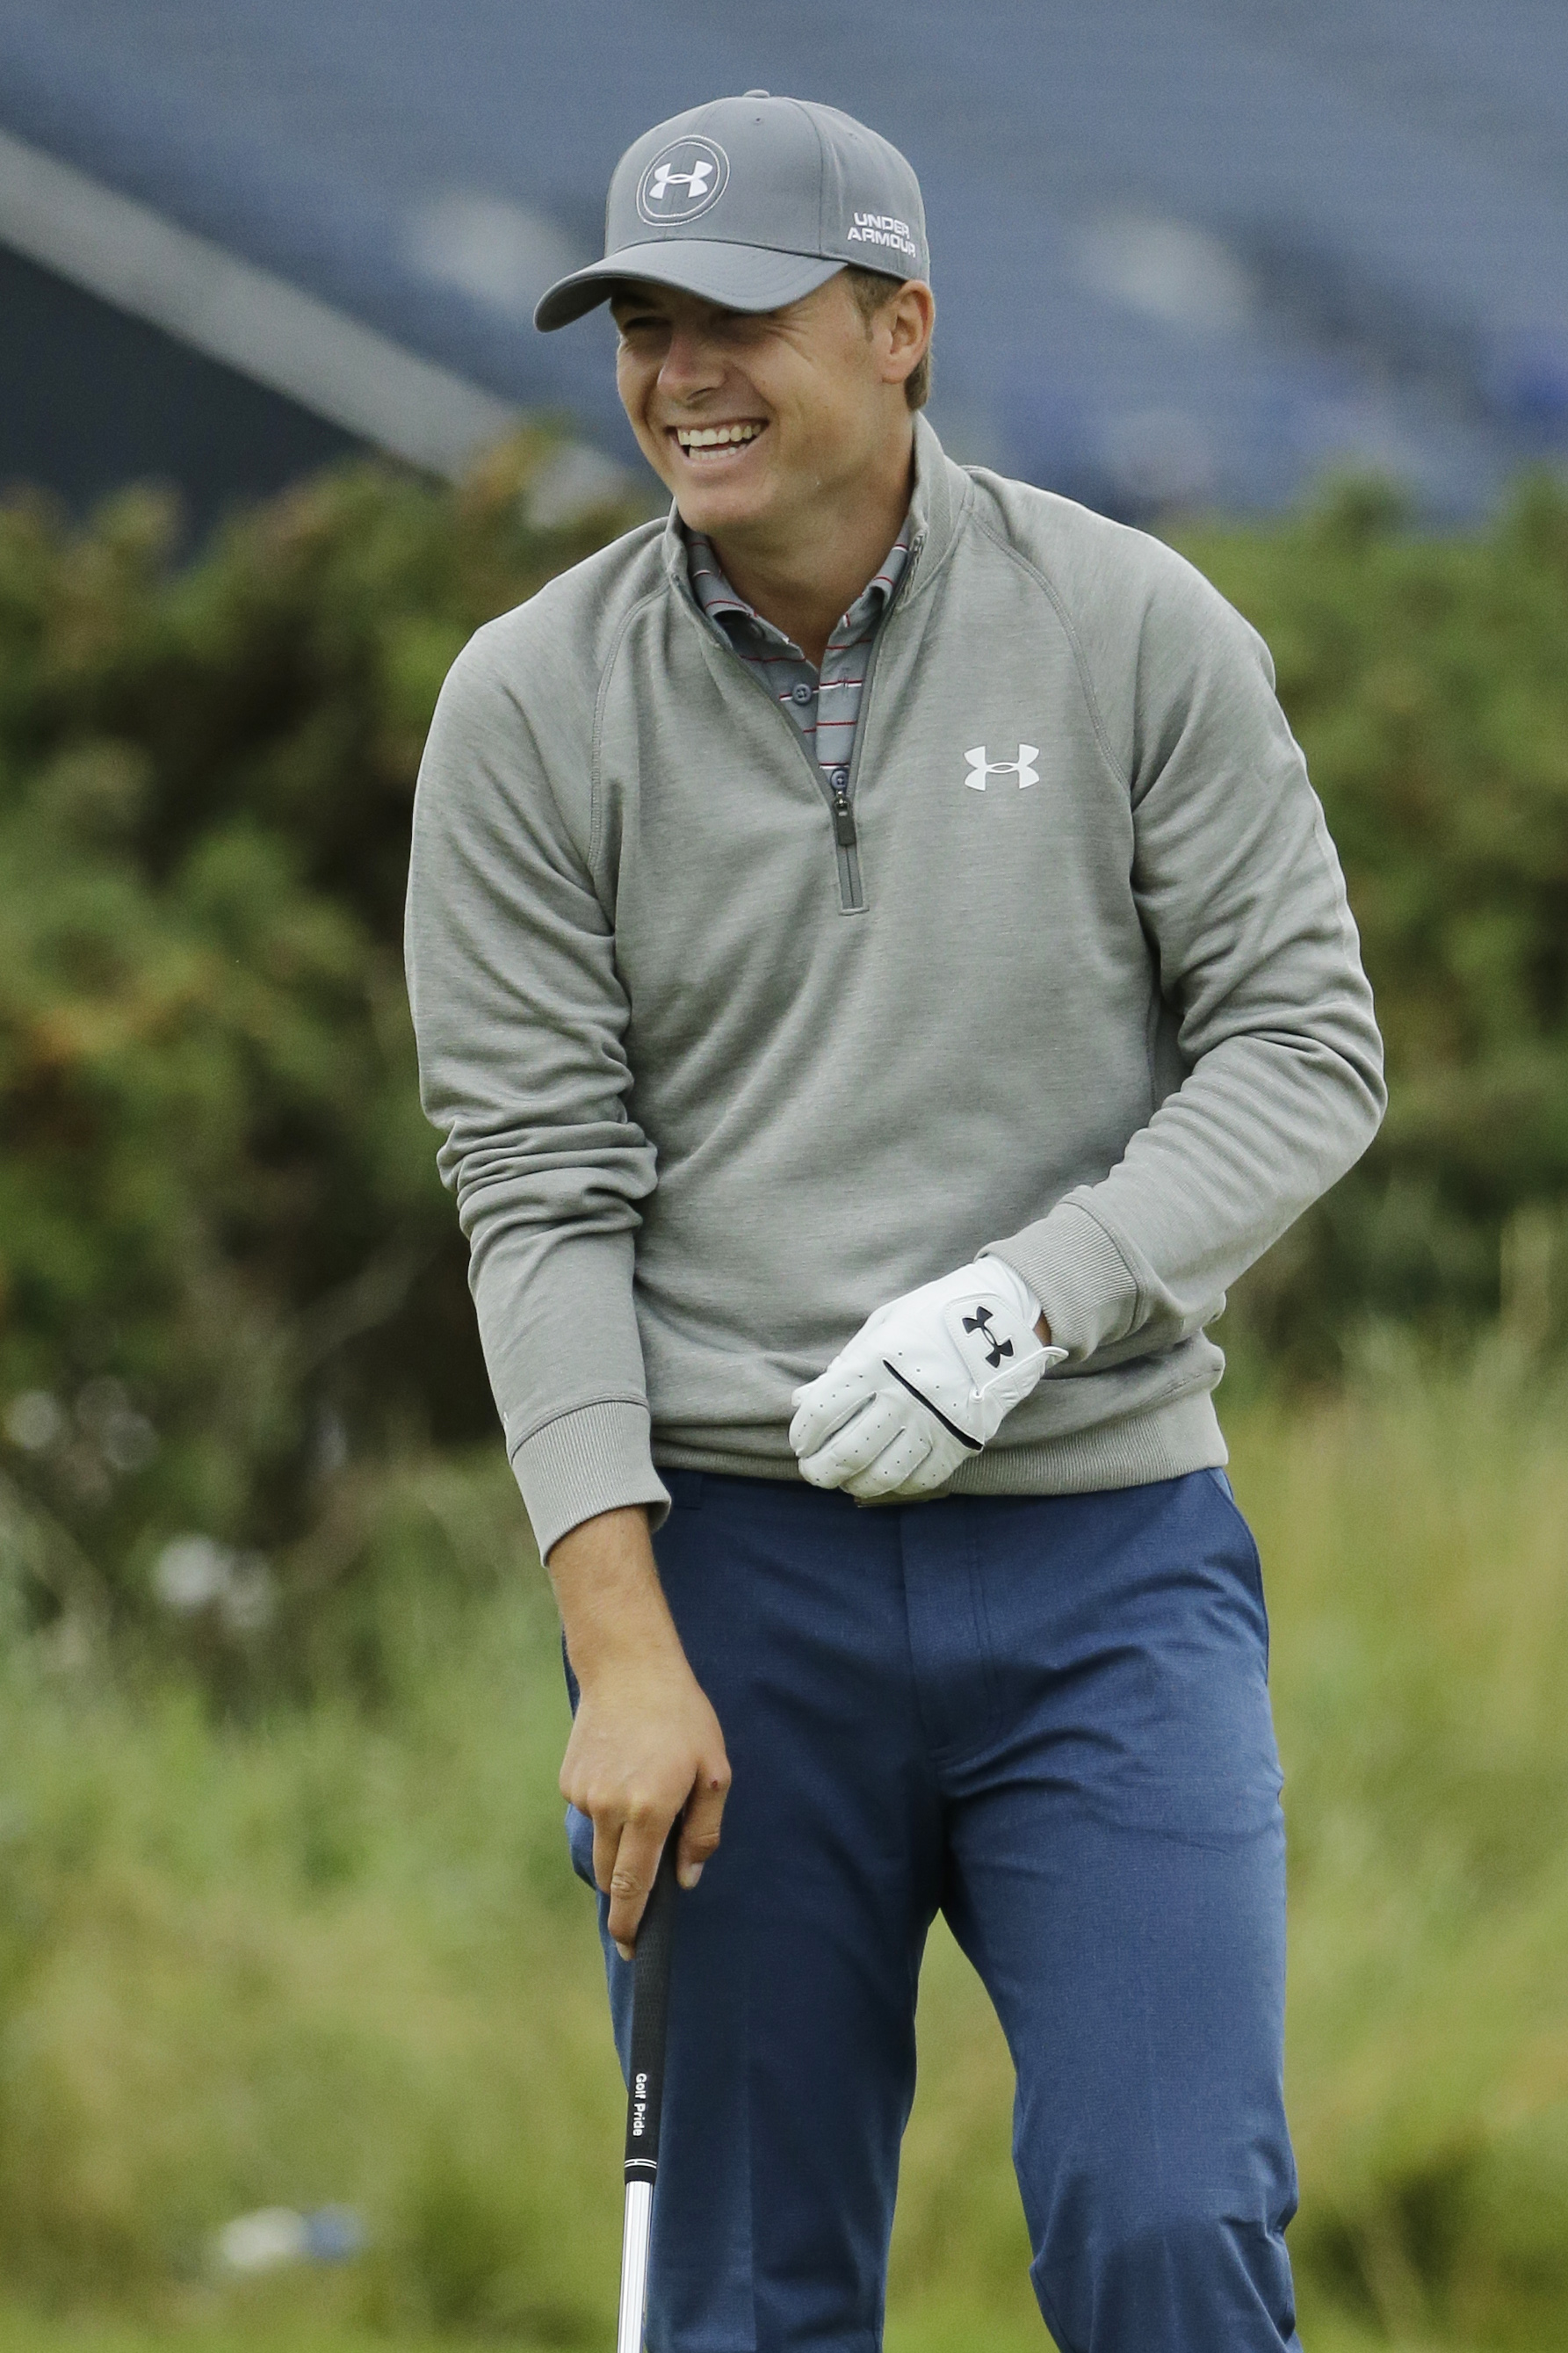 United States' Jordan Spieth laughs on the putting green during a practice round at the British Open Golf Championship at the Old Course, St. Andrews, Scotland, Tuesday, July 14, 2015. (AP Photo/David J. Phillip)